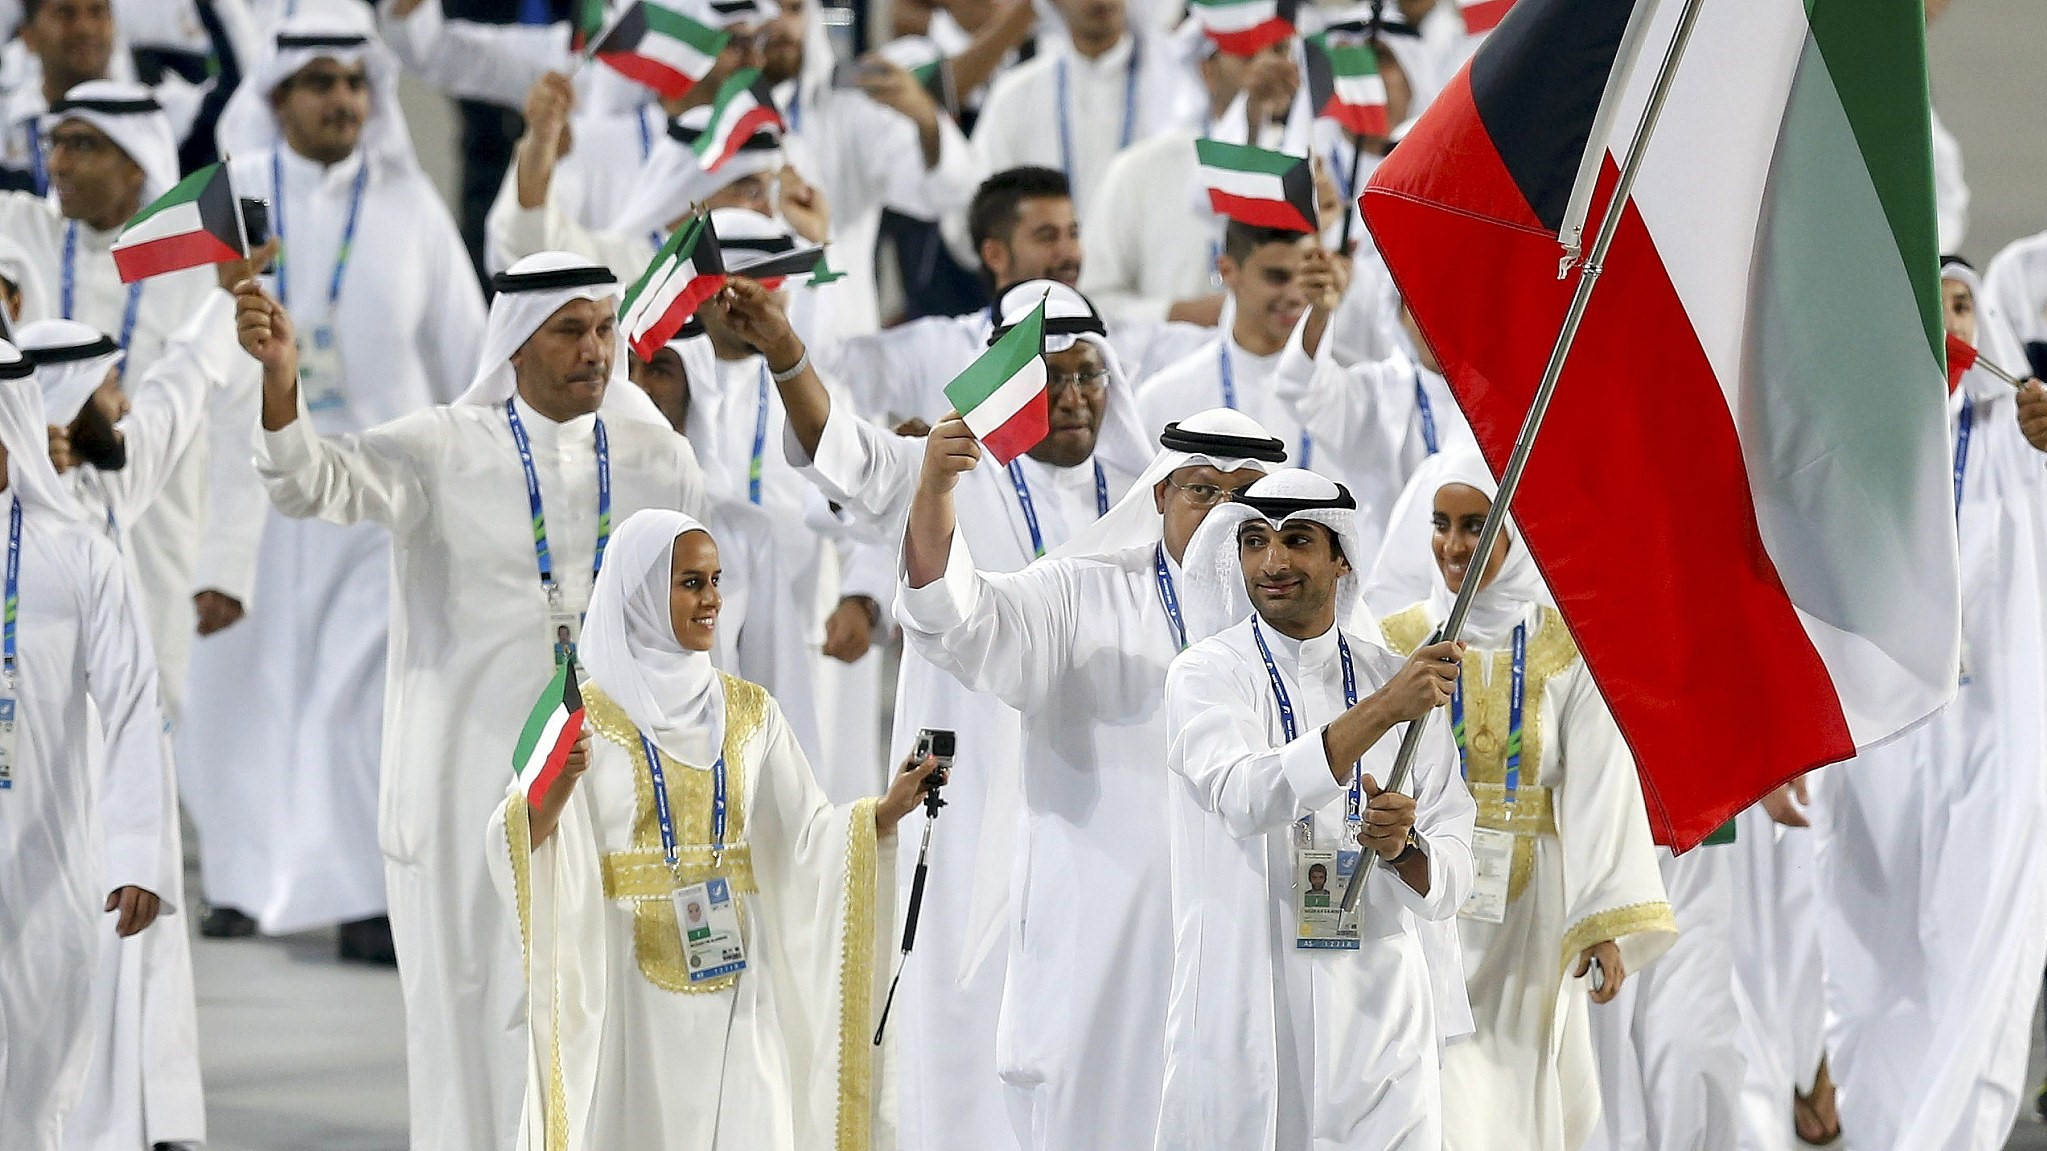 Kuwaiti athletes allowed to carry own flag in 2018 Asian Games